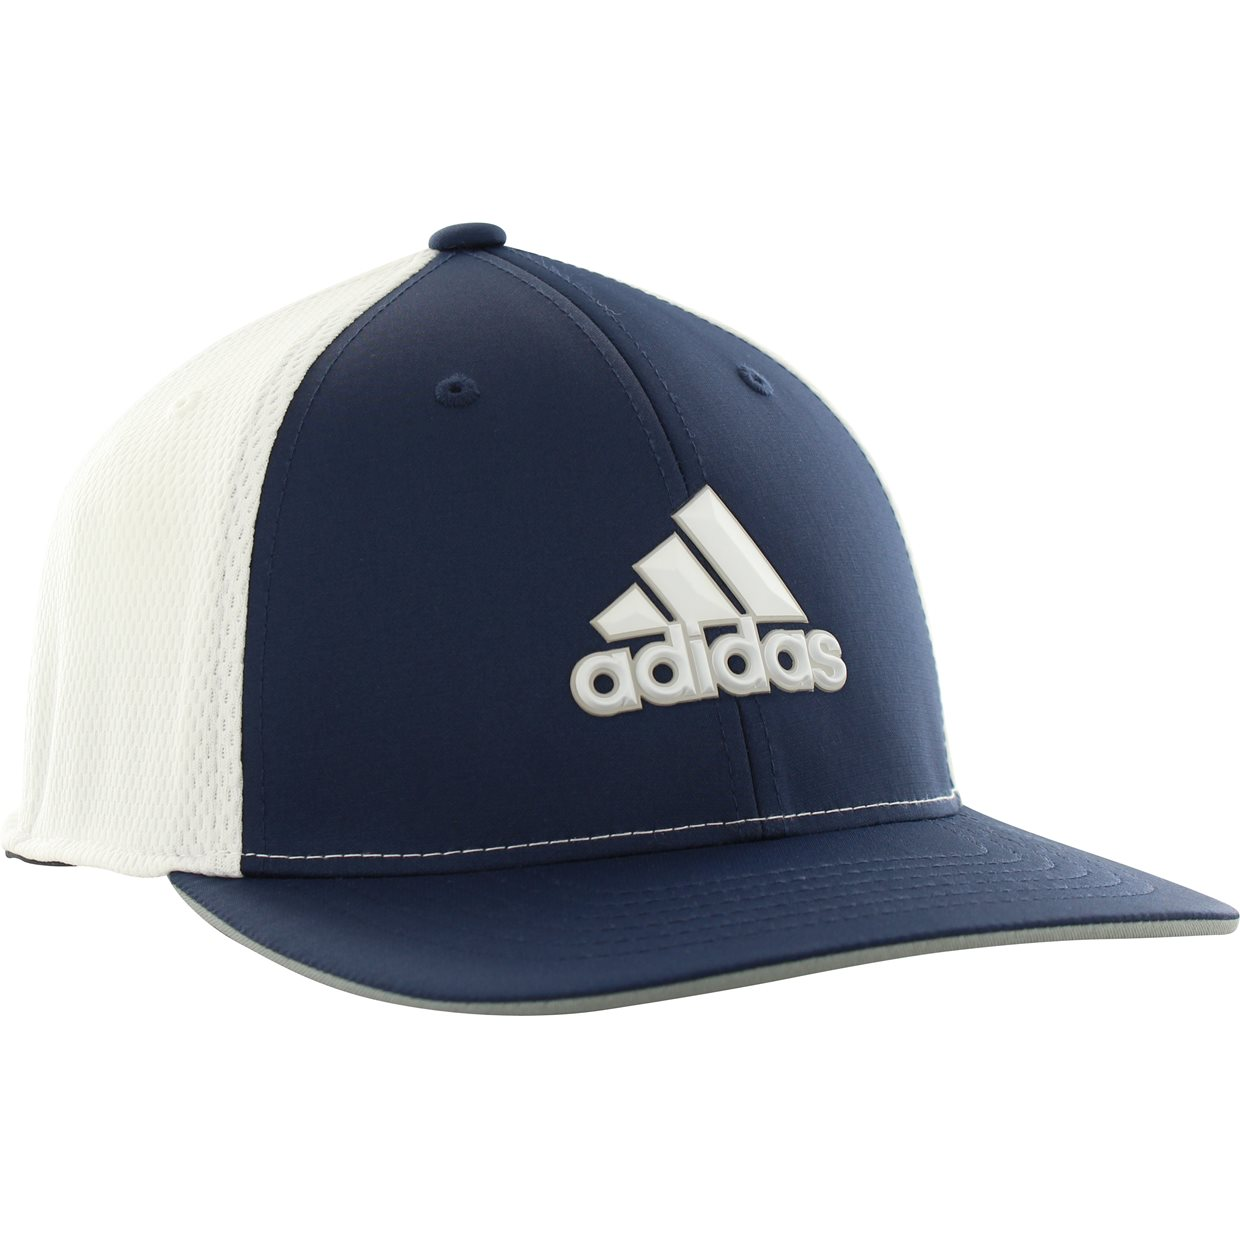 2018736275d Adidas Climacool Tour Headwear Apparel at GlobalGolf.com